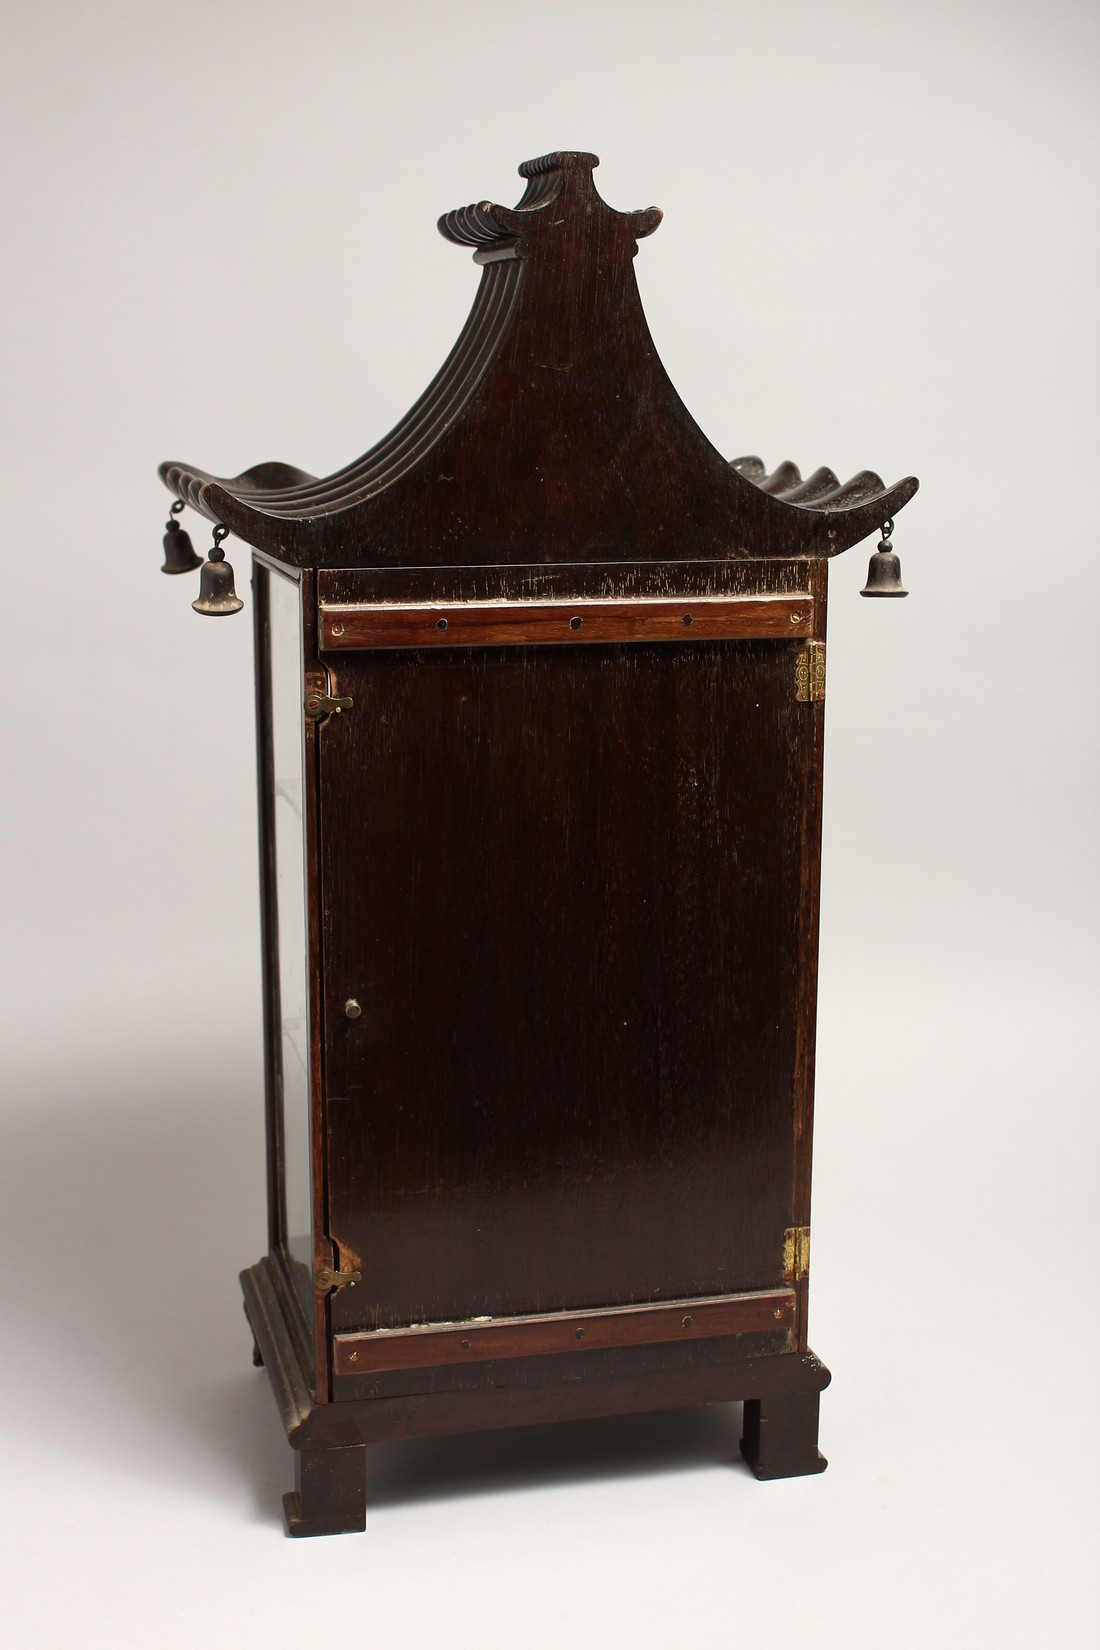 A GOOD GEORGIAN DESIGN CHINESE STYLE, SHOW CASE with Pagoda top hung with bells 20ins high, 8ins - Image 4 of 6